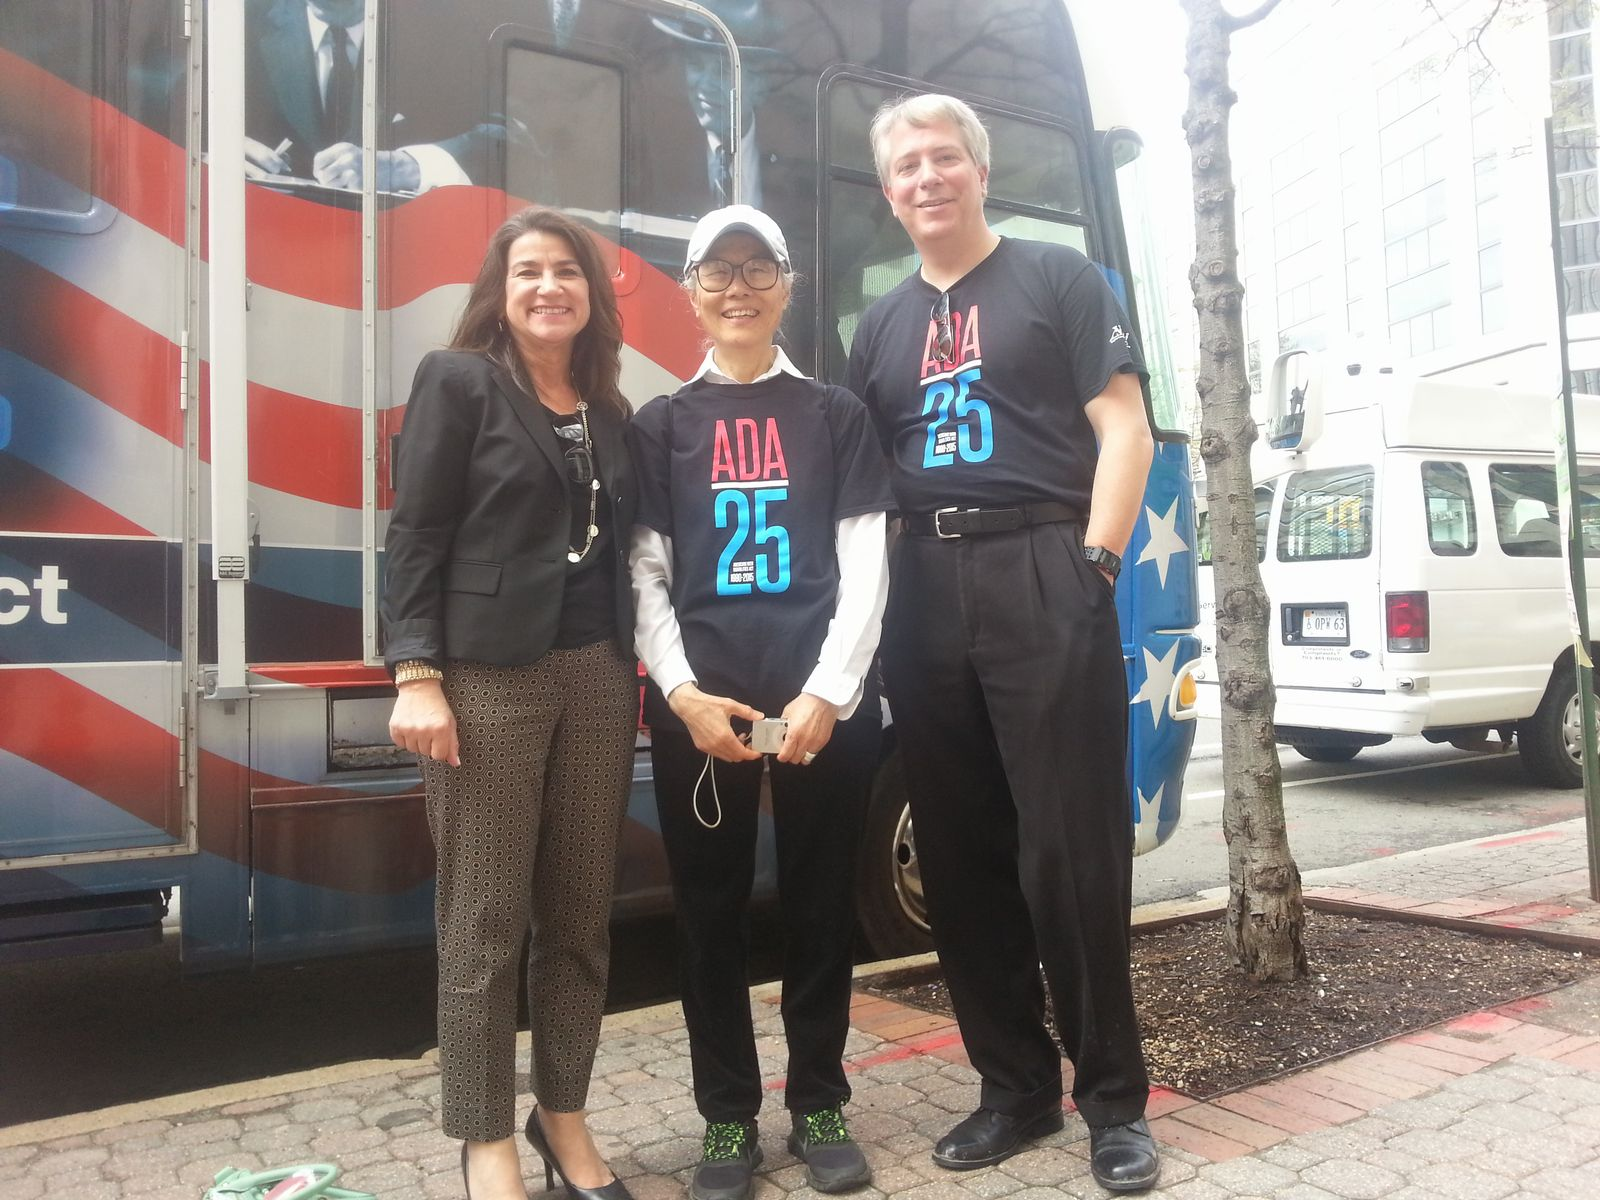 Soula Antoniou, Yoshiko Dart, and Brewster Thackeray in front of the Road to Freedom bus